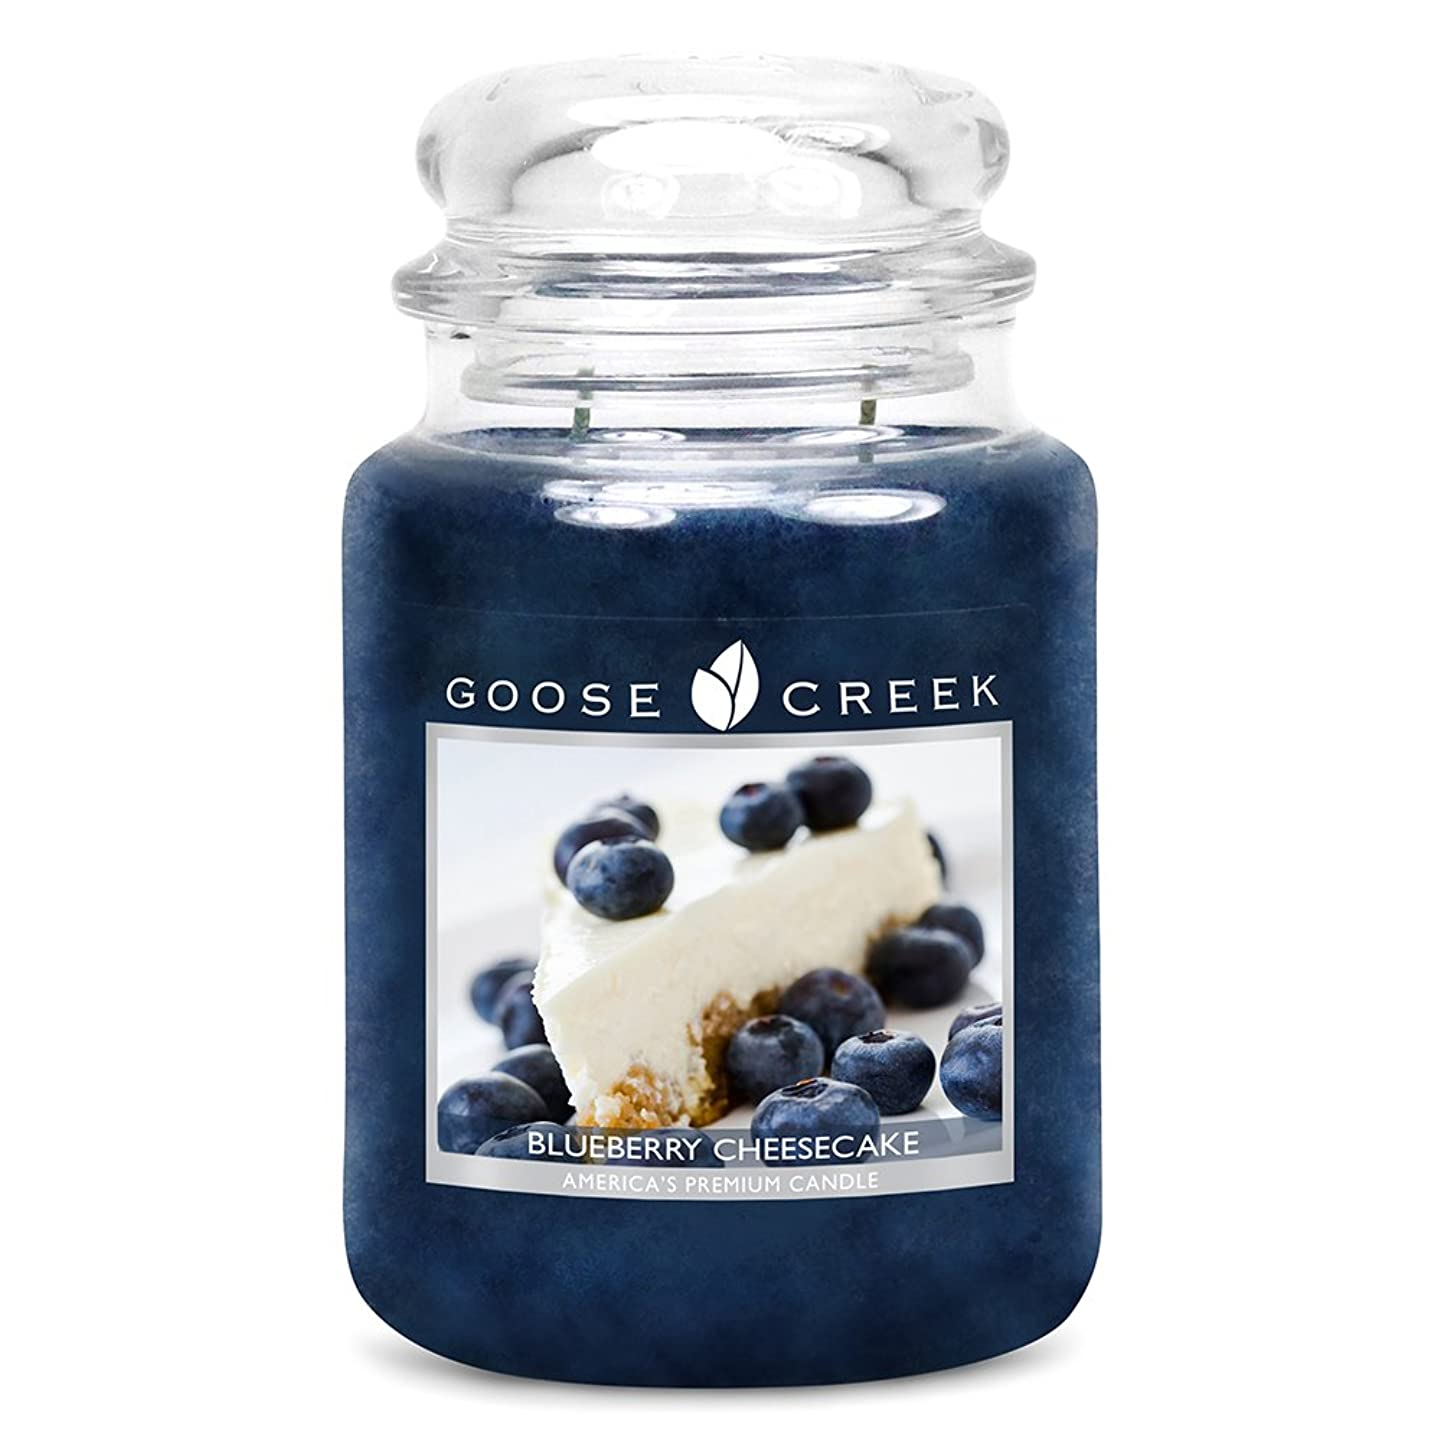 Goose Creek Scented Candles Blueberry Cheesecake Large Jar Candle Great Fragrance 24 oz